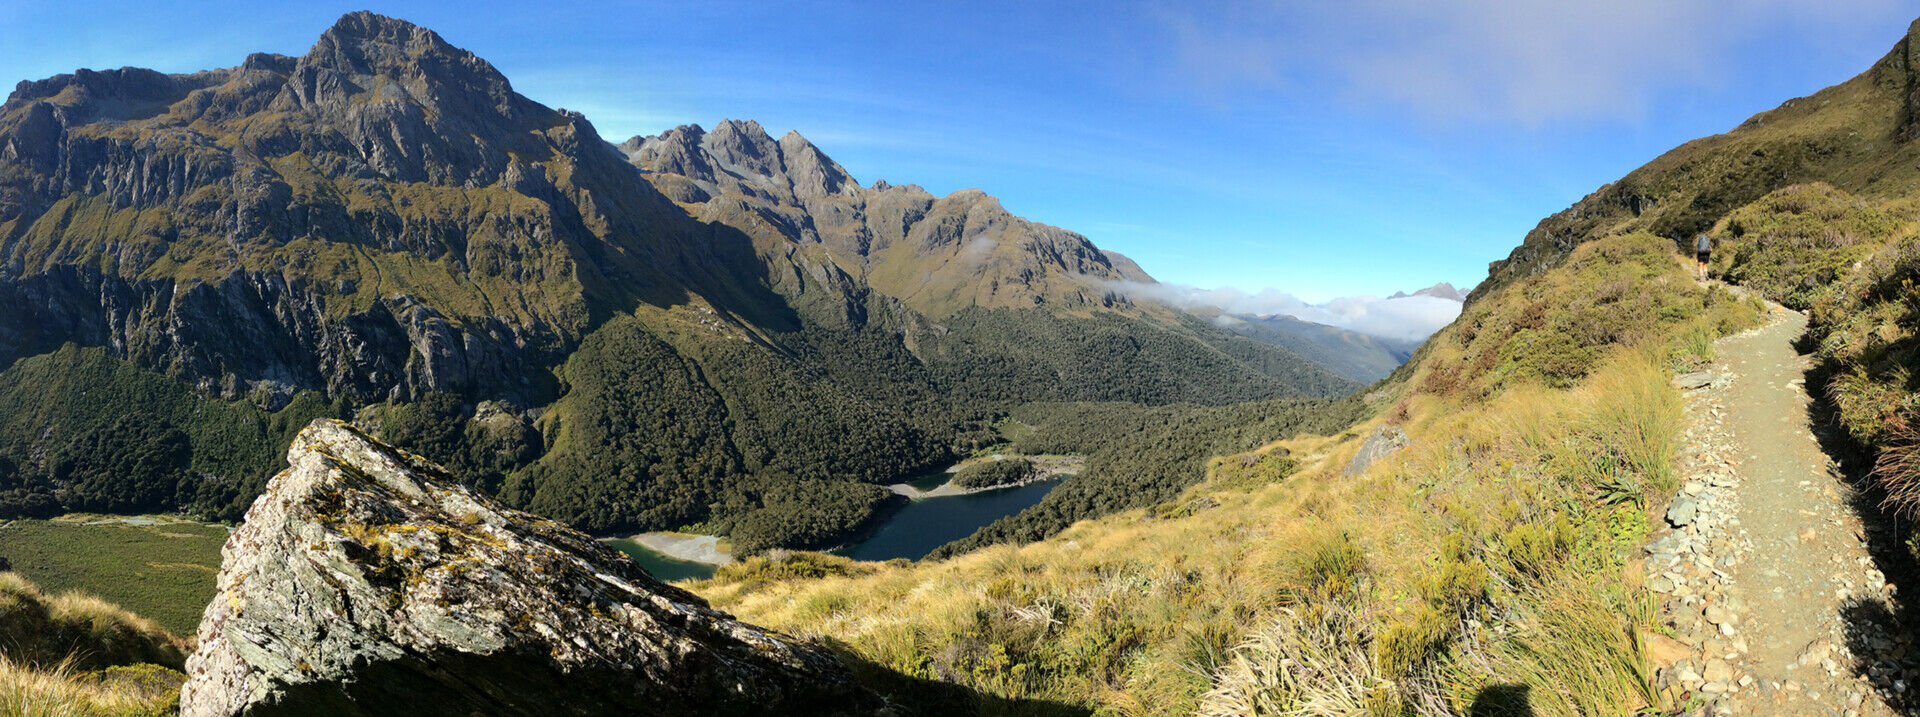 routeburn project nznf